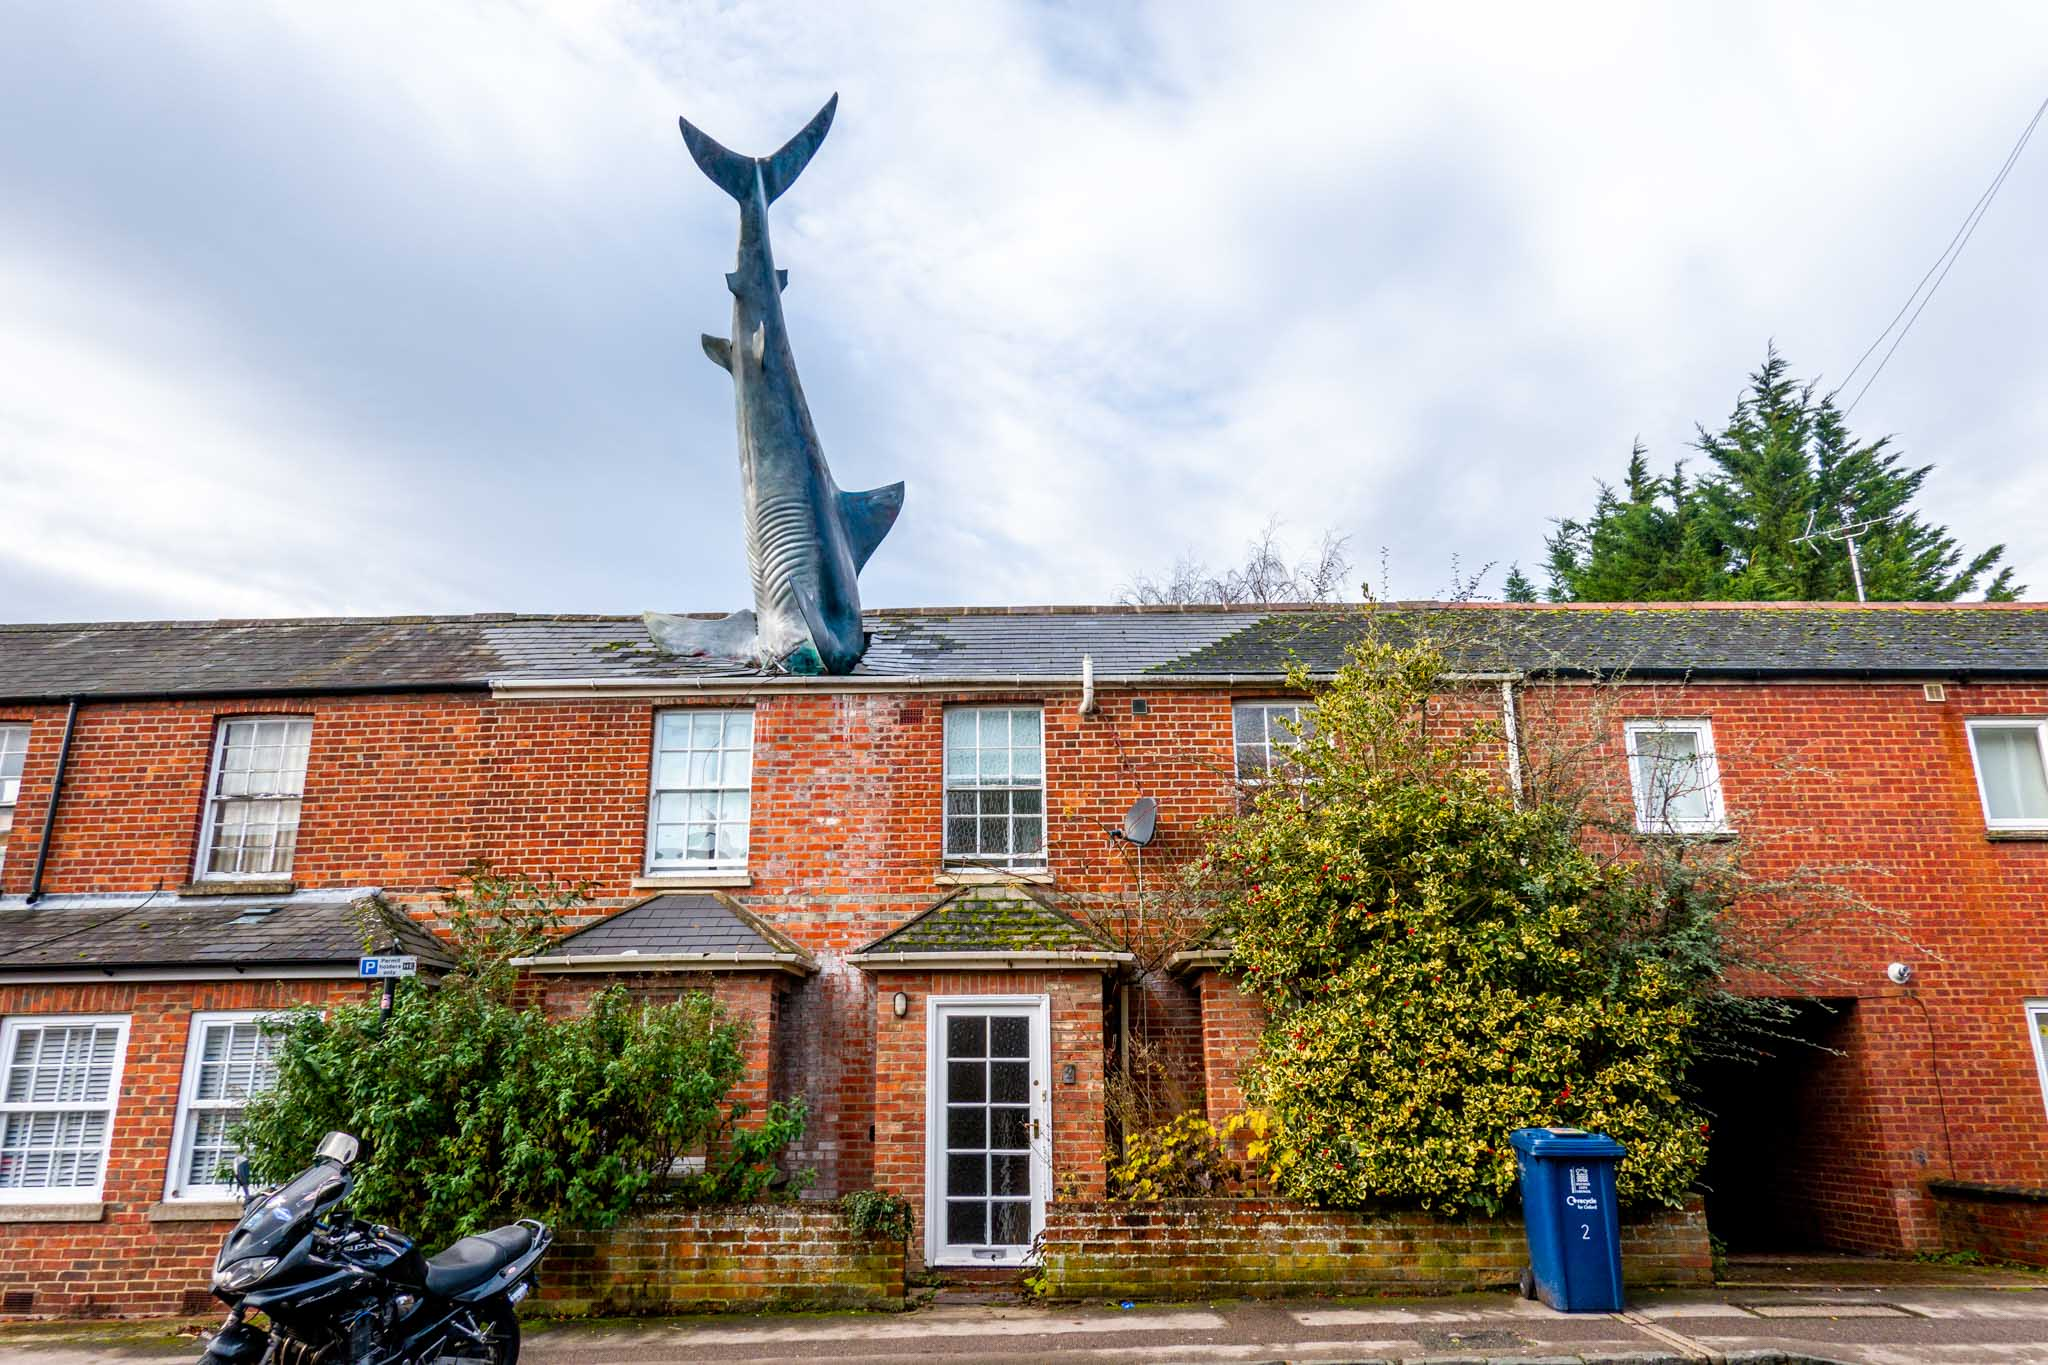 Shark sculpture protruding from the roof of a home